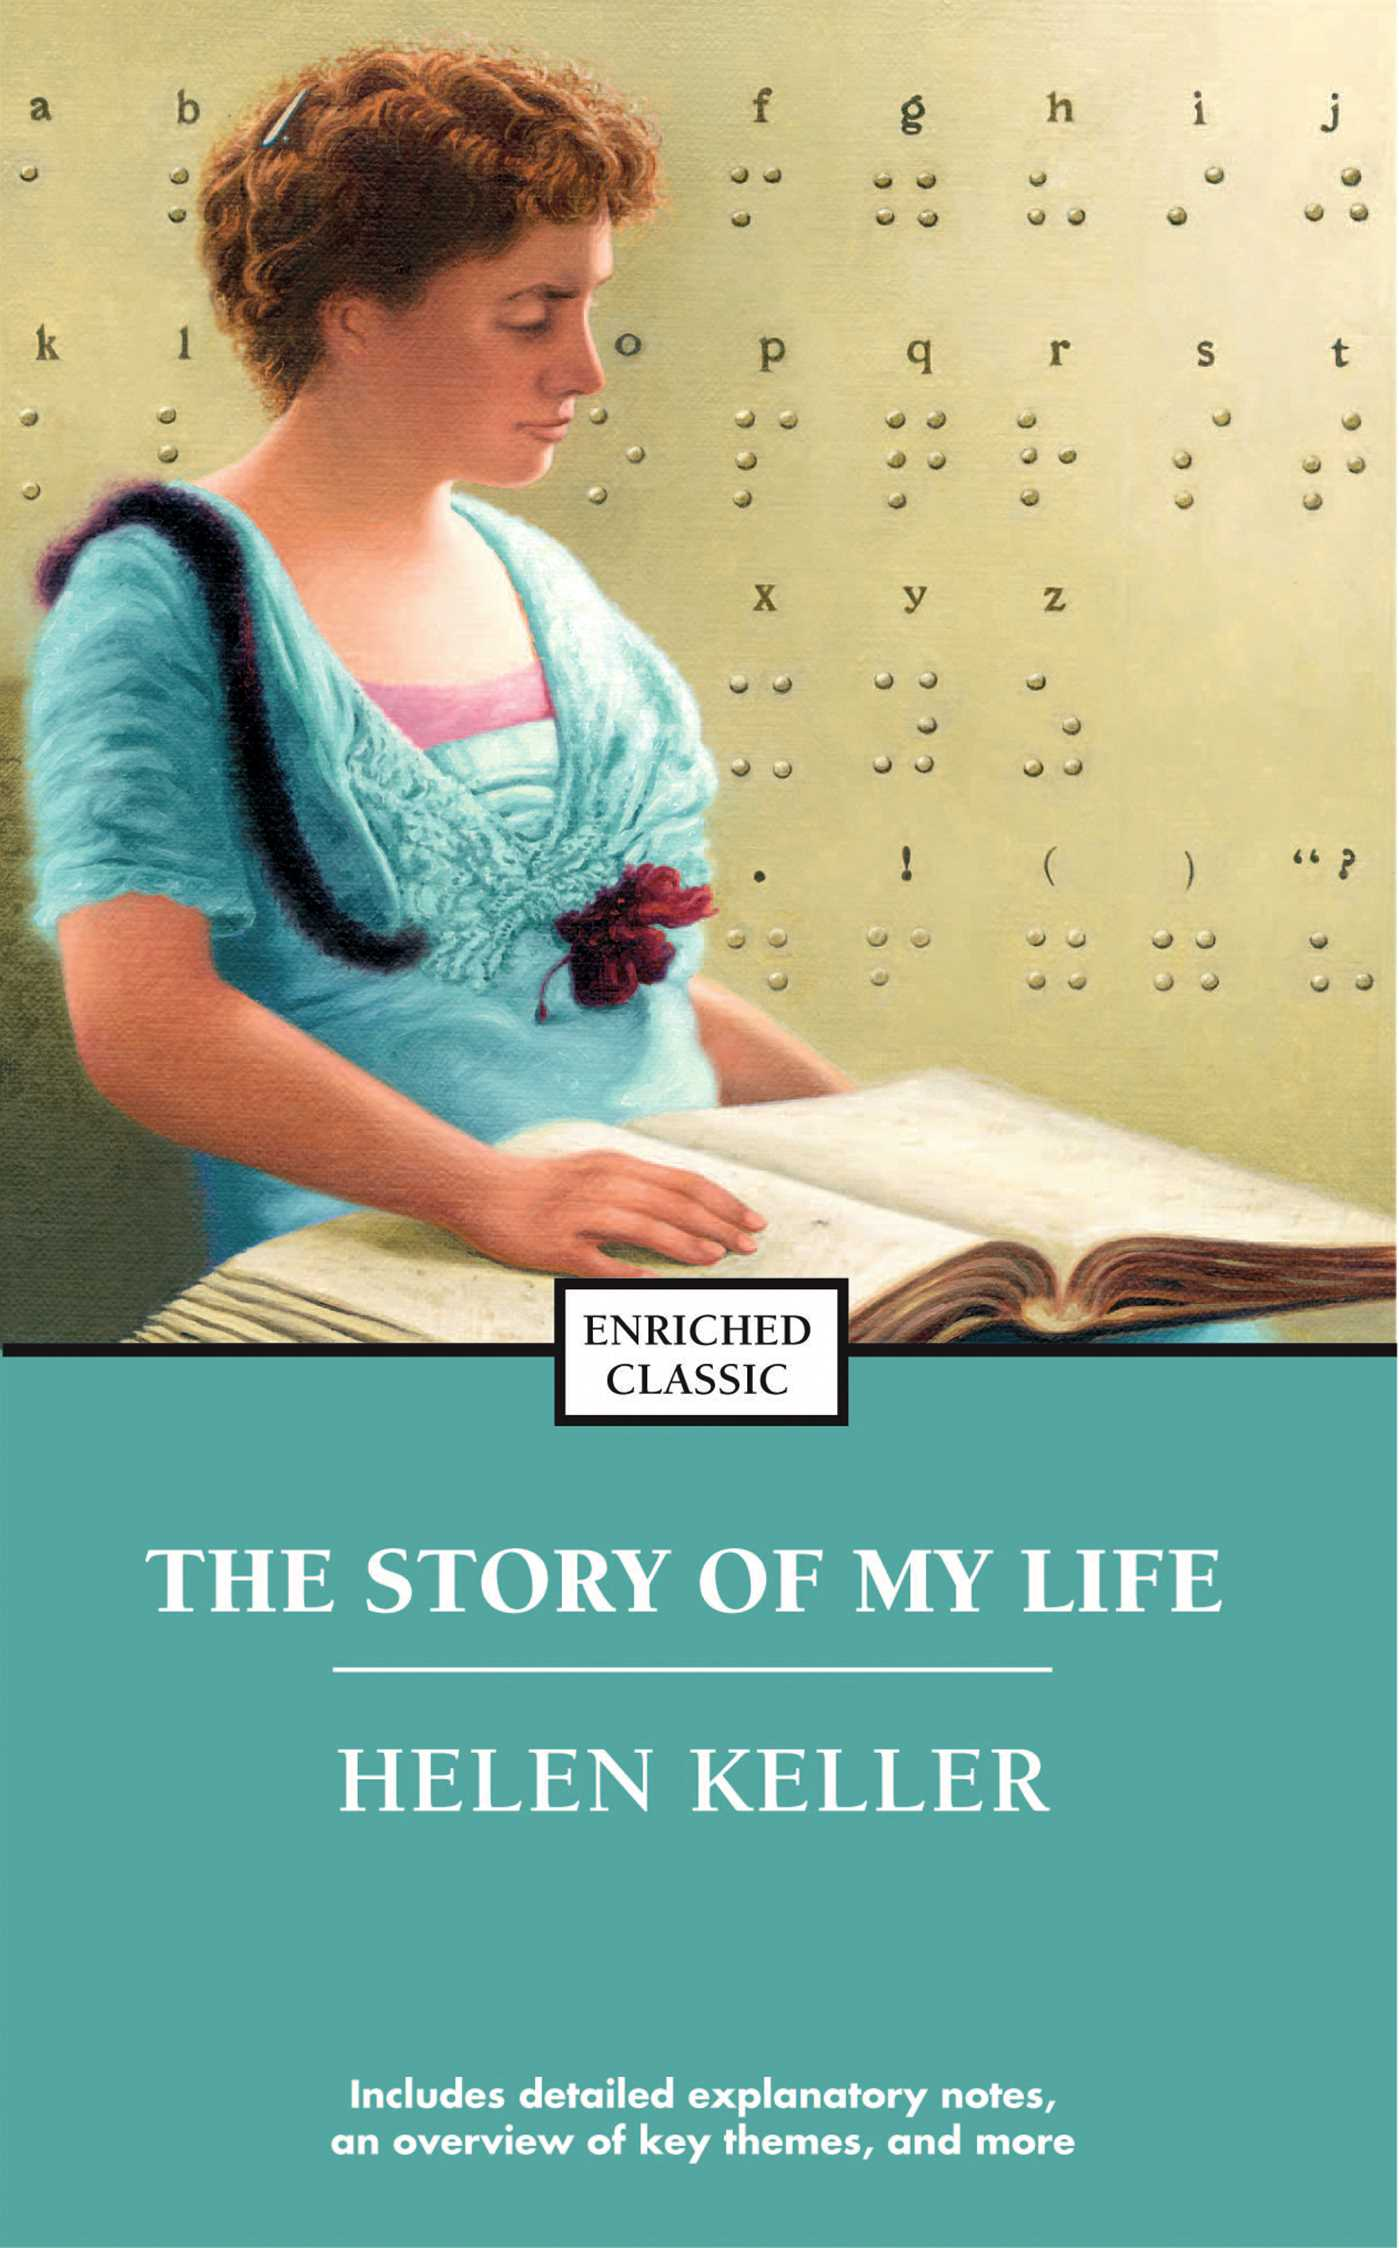 an introduction to the life and literature by helen keller A leading figure of the twentieth century, helen adams keller started life as a  healthy baby born in the summer of 1880 when she was 19 months old, helen.